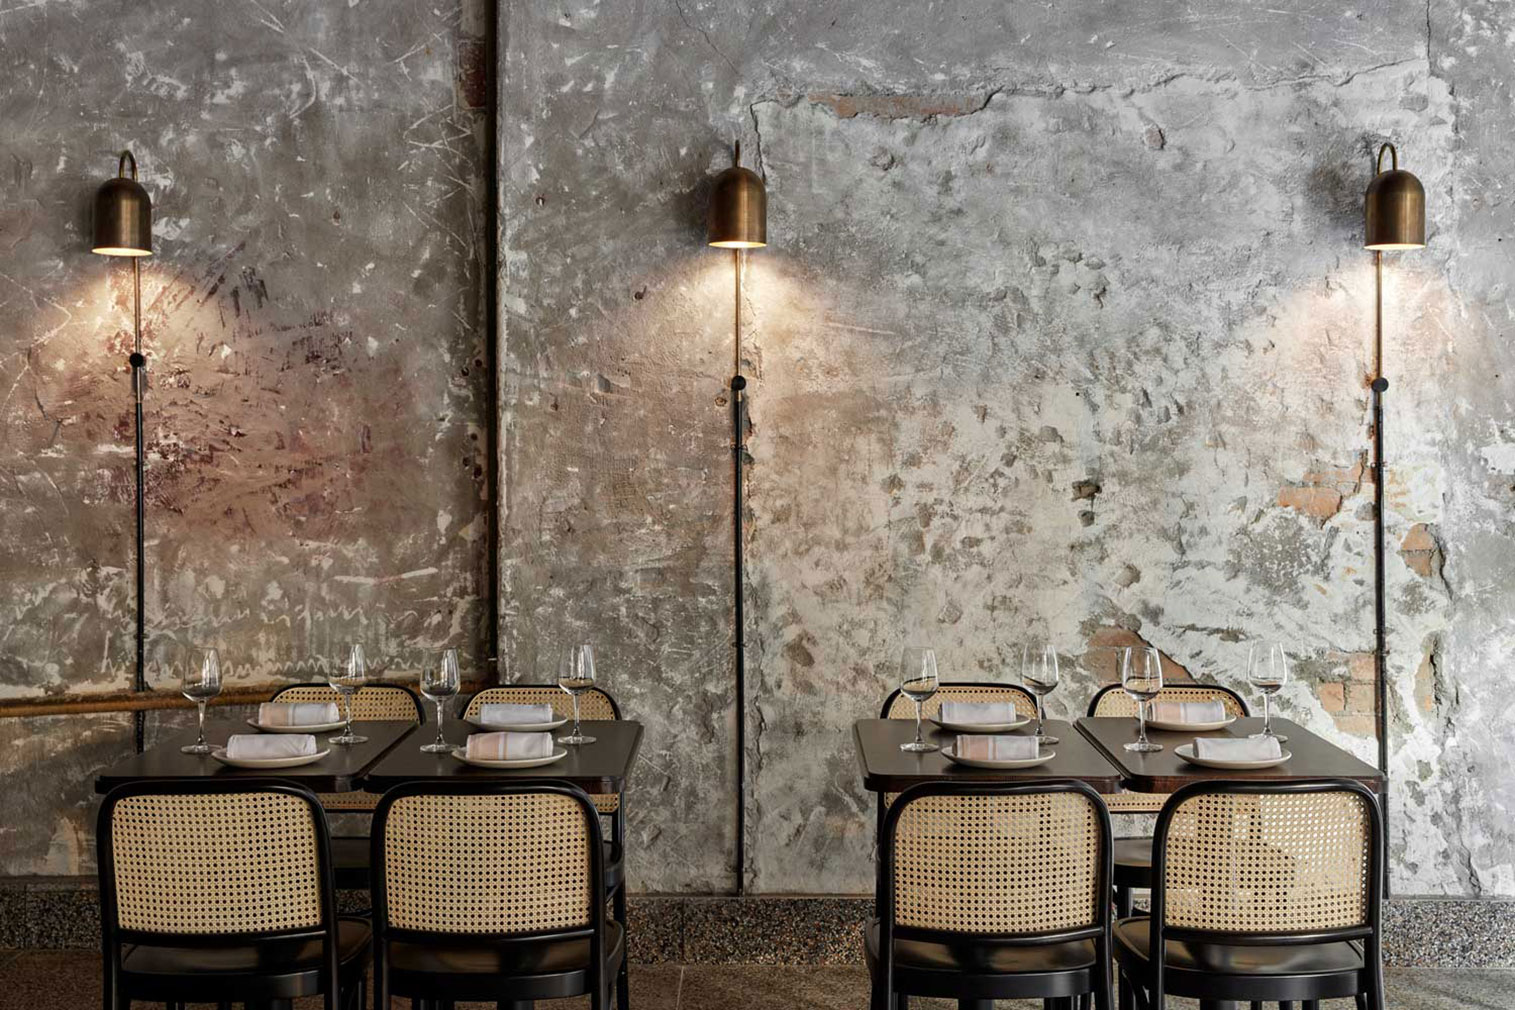 Pentolina restaurant in Melbourne designed by Biasol